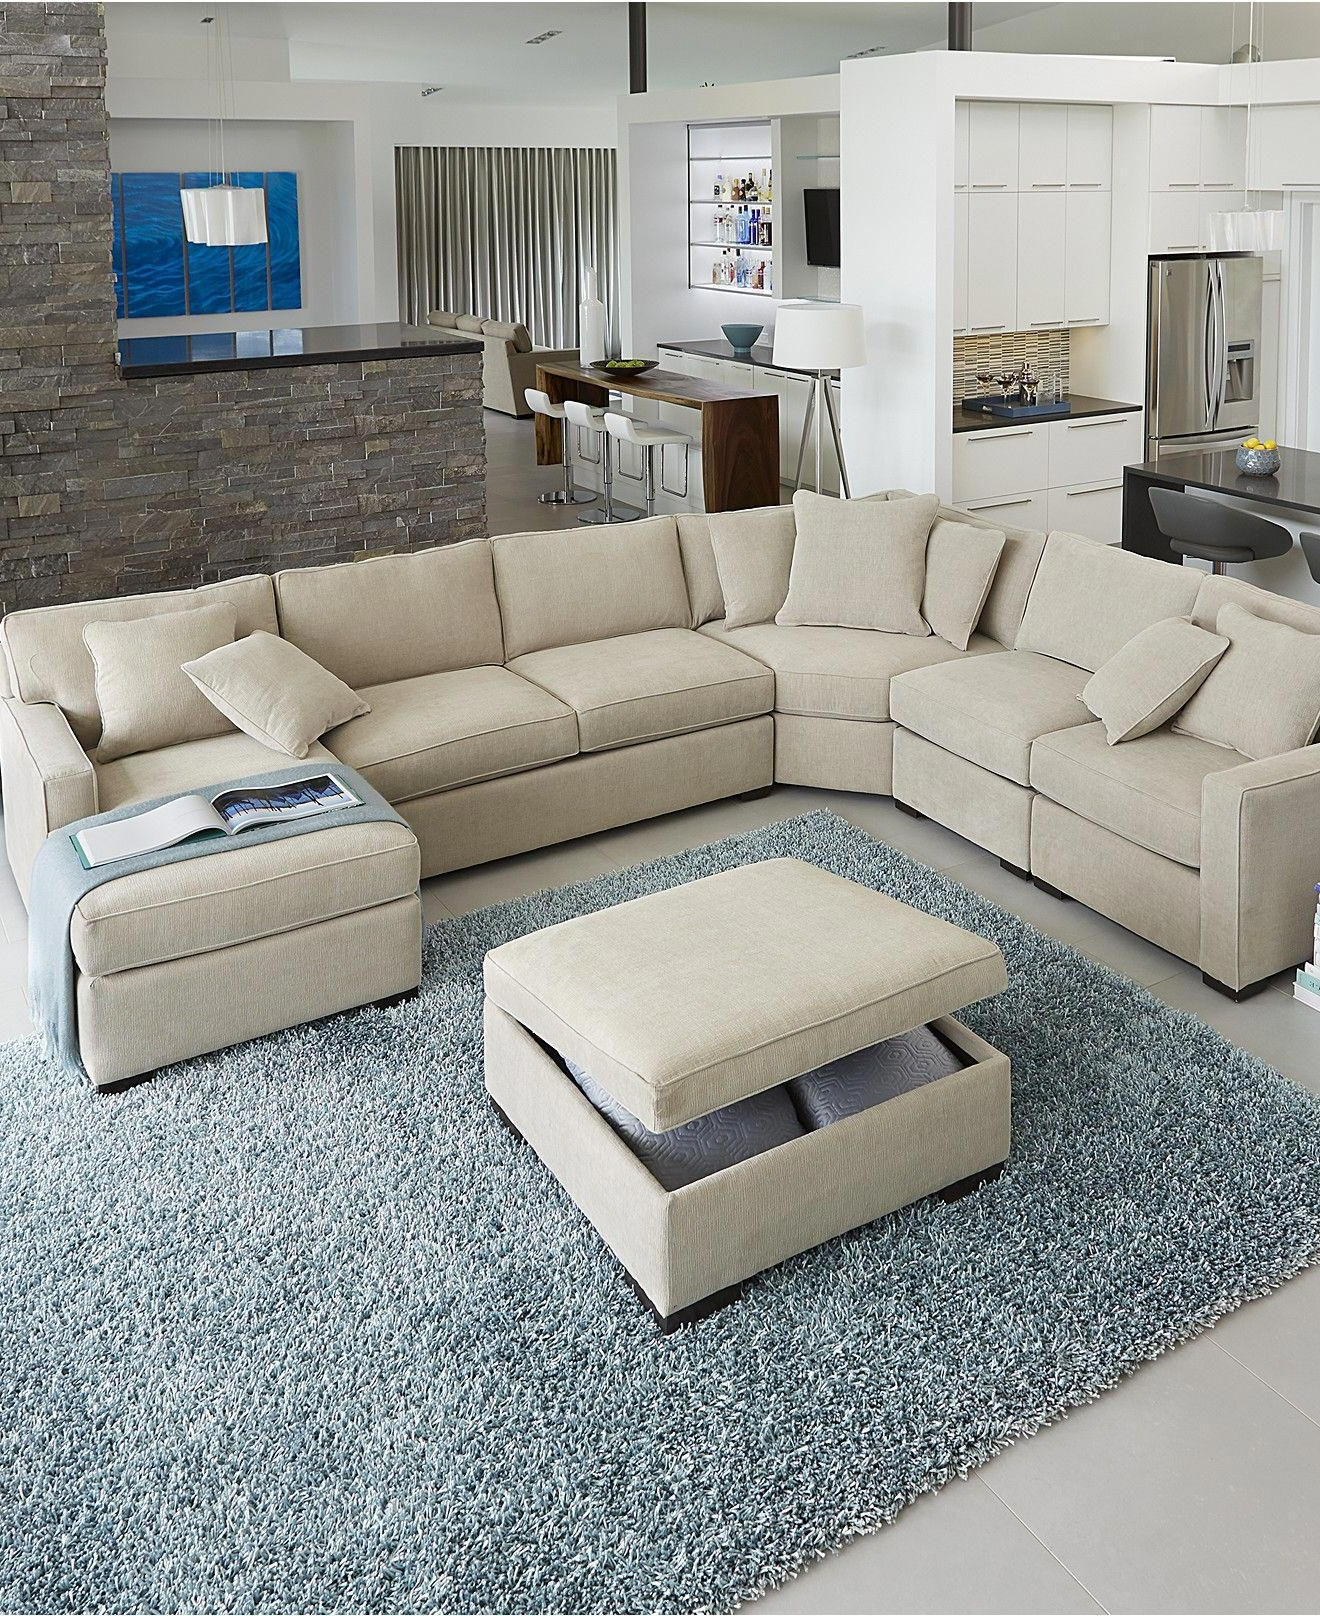 Kerri 2 Piece Sectionals With Laf Chaise Regarding Most Up To Date List Of Pinterest Living Spaces Furniture Sectional Sofas Layout (View 12 of 20)